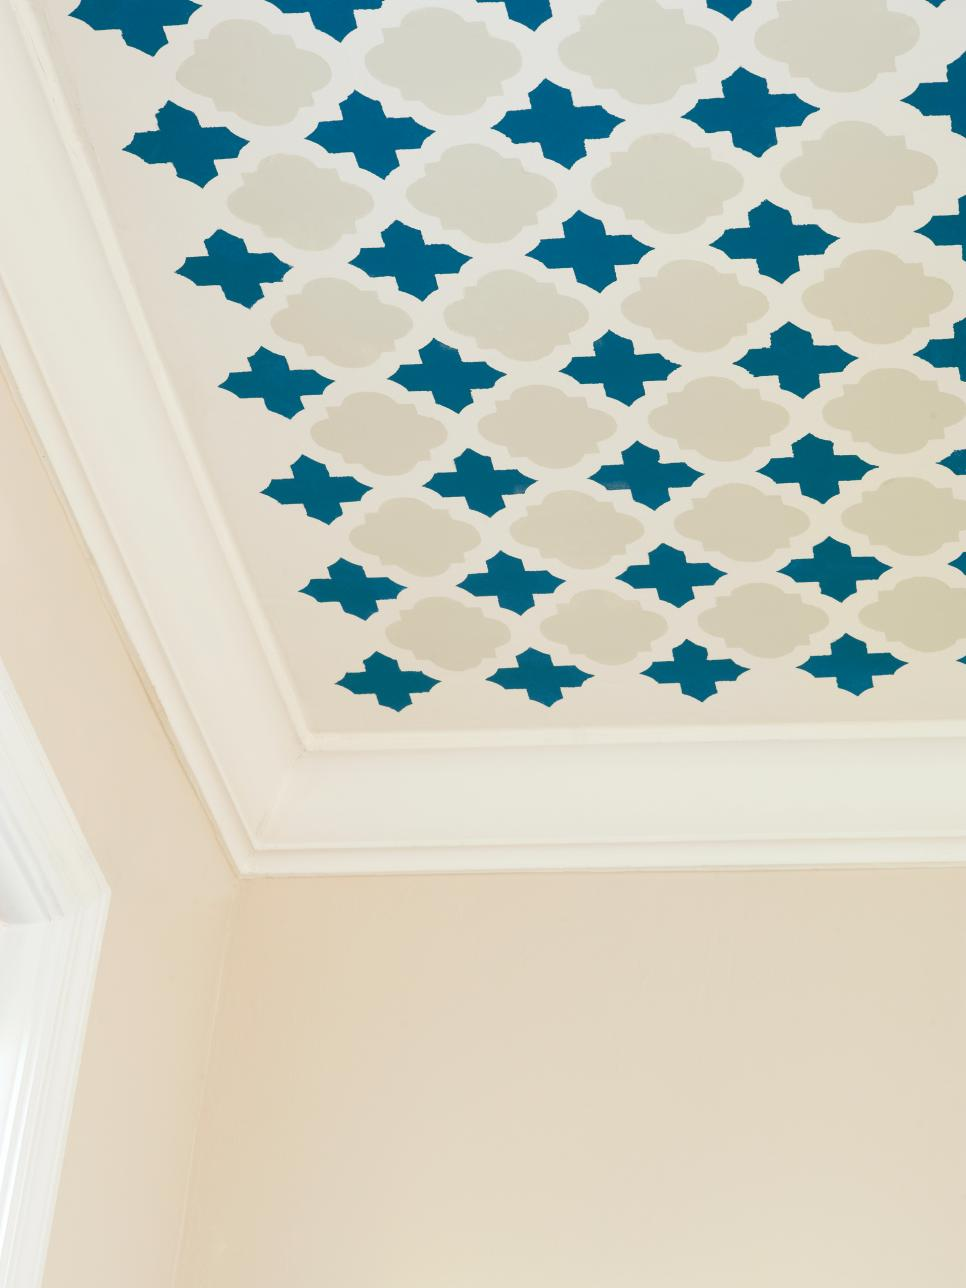 HGTV featured this stencil project in one of its blogs. This really transforms the ceiling in this room!